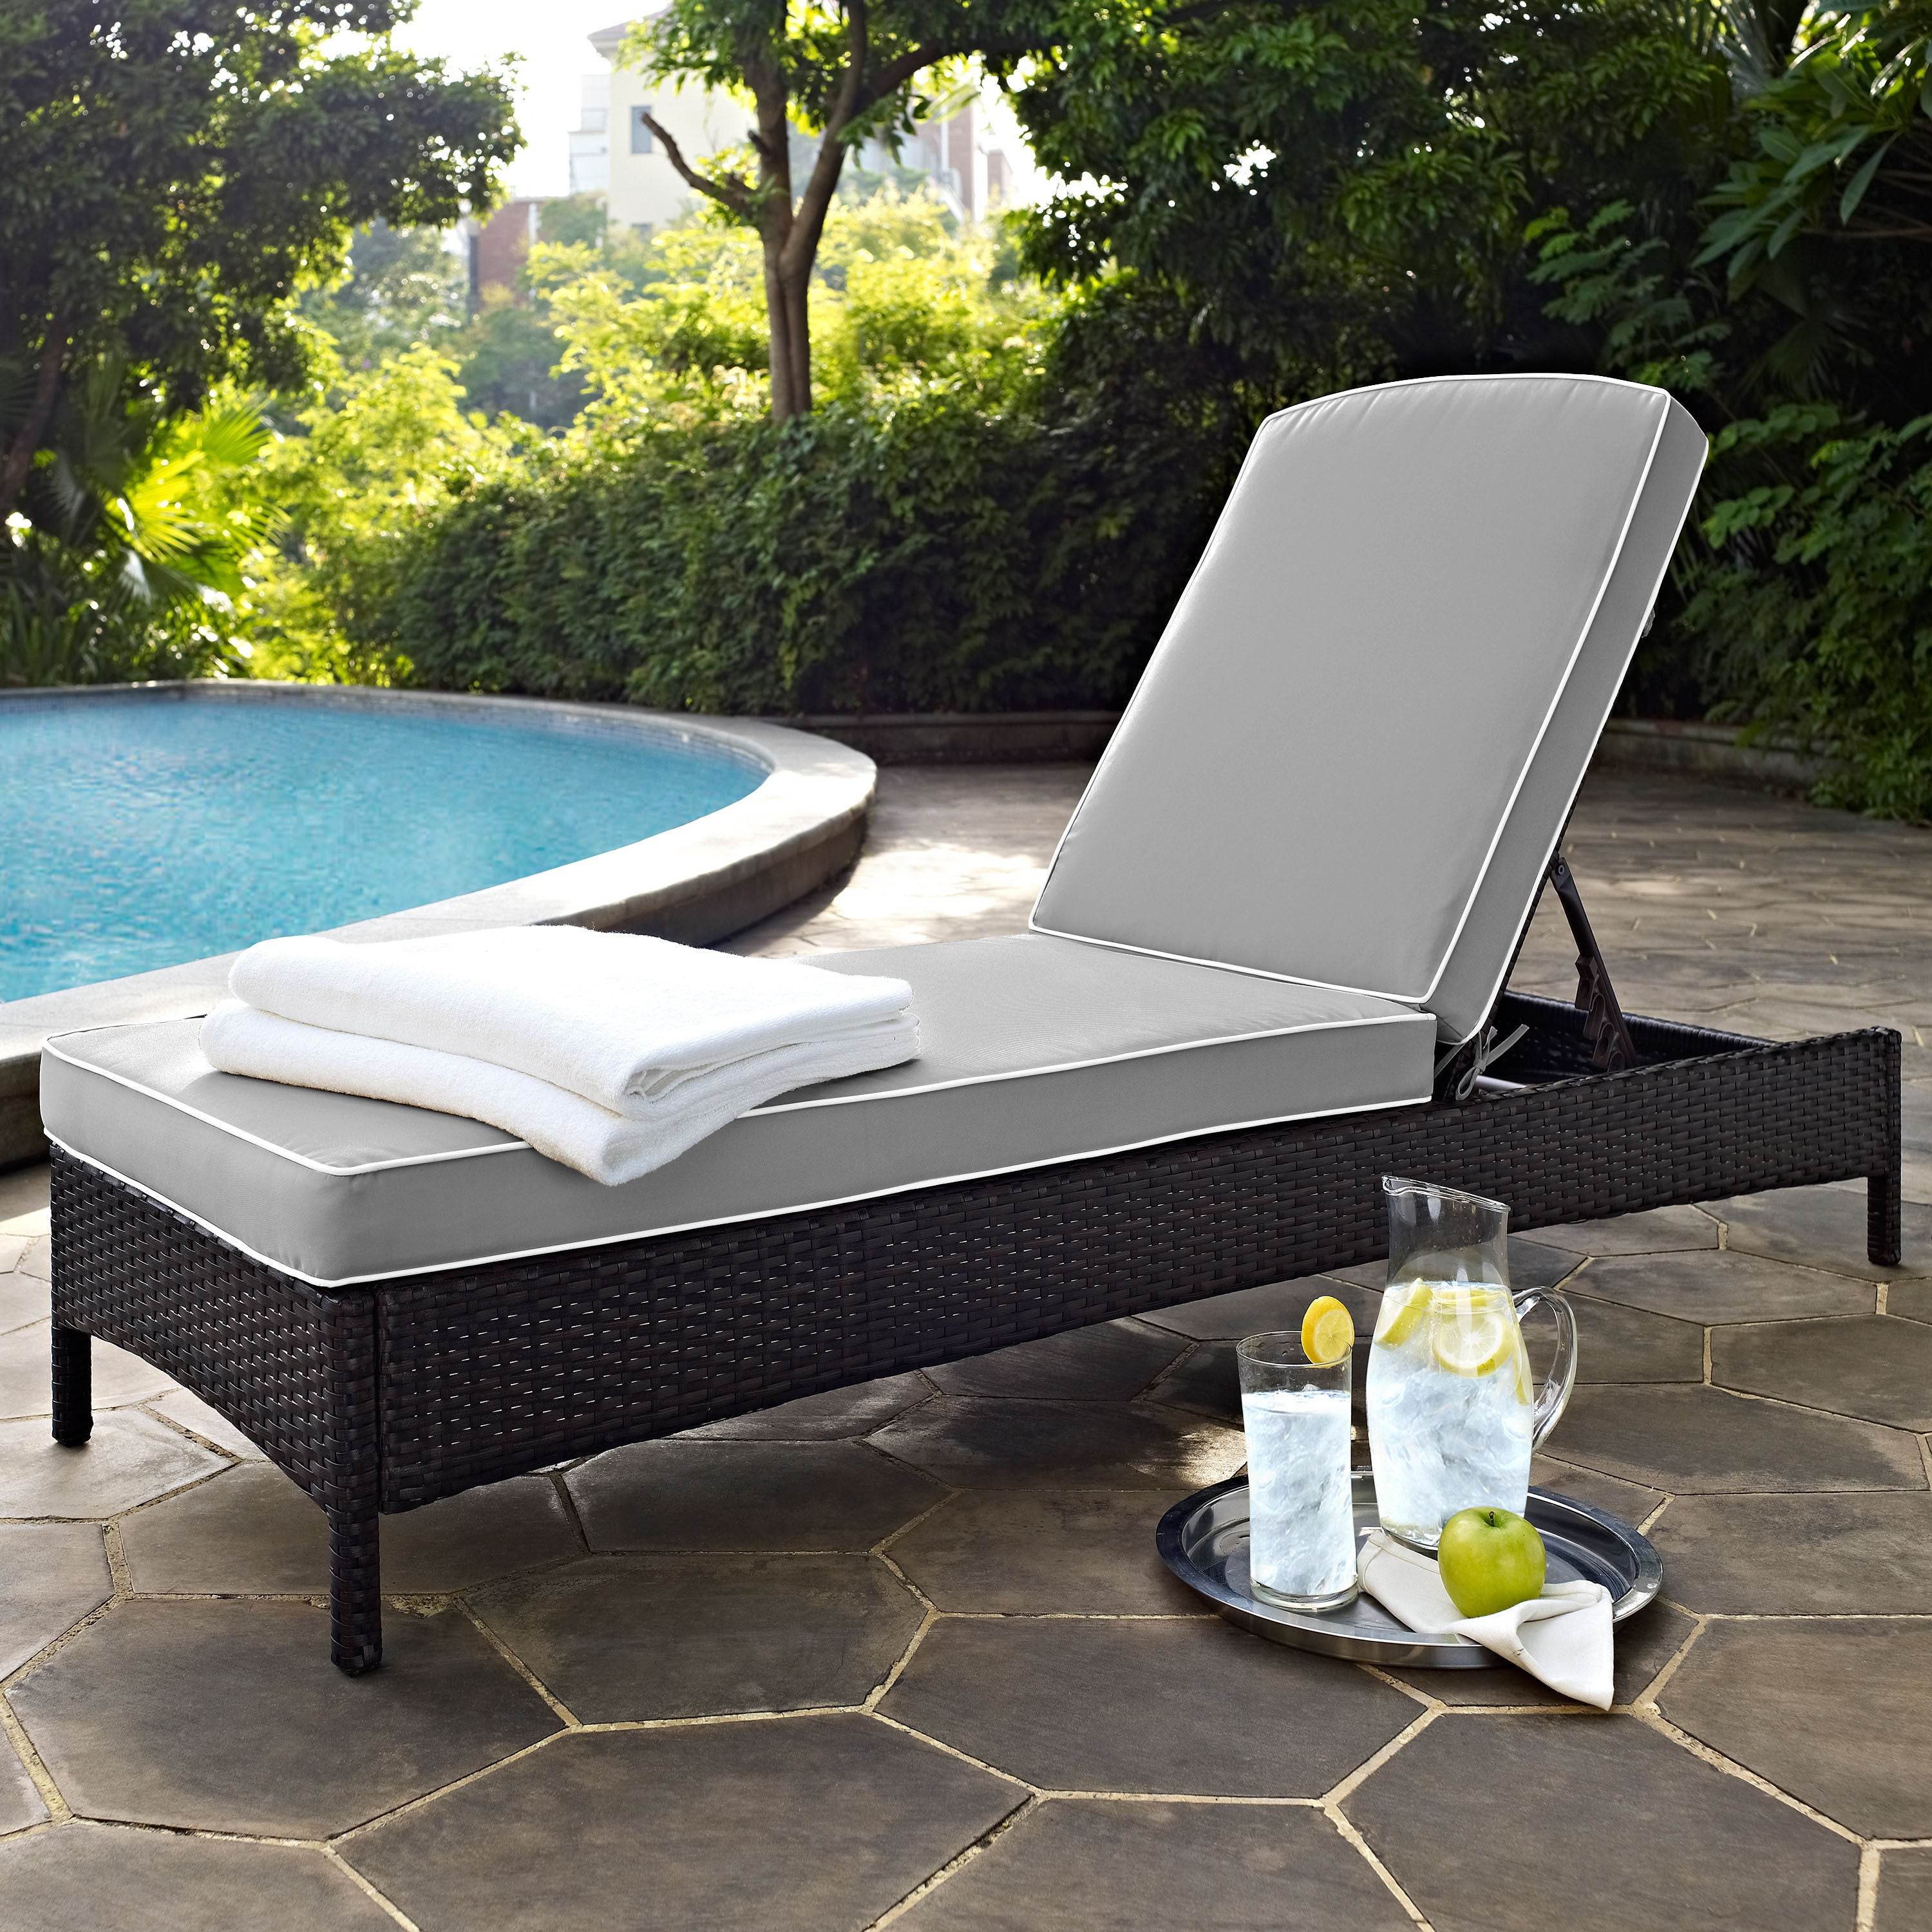 Outdoor Chaise Lounge.Palm Harbor Brown Wicker Outdoor Chaise Lounge With Grey Cushions